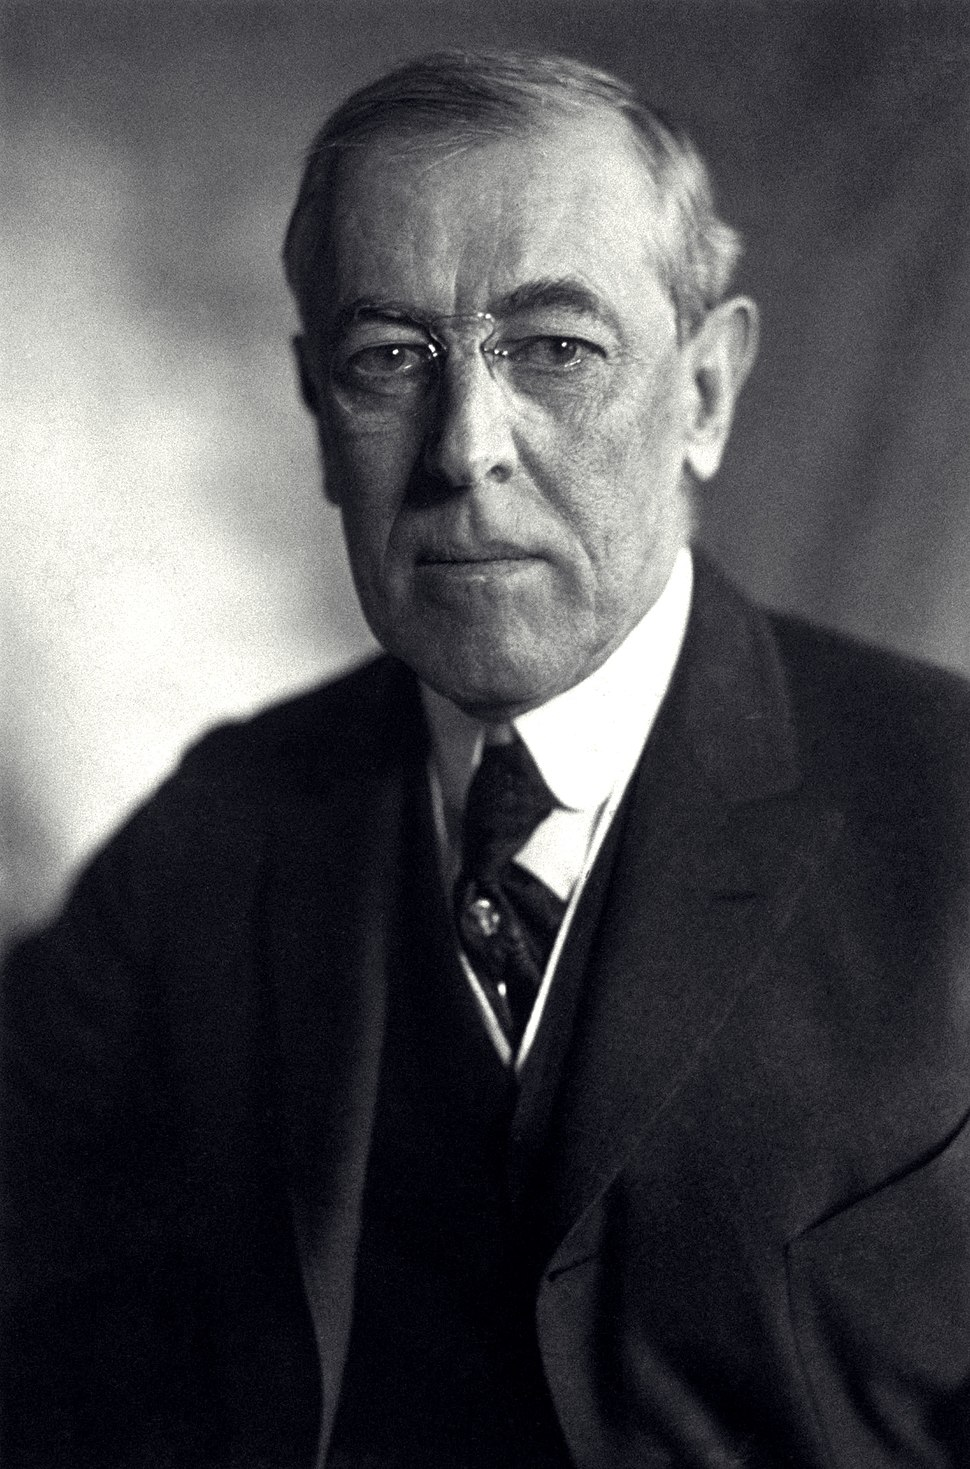 Thomas Woodrow Wilson, Harris & Ewing bw photo portrait, 1919